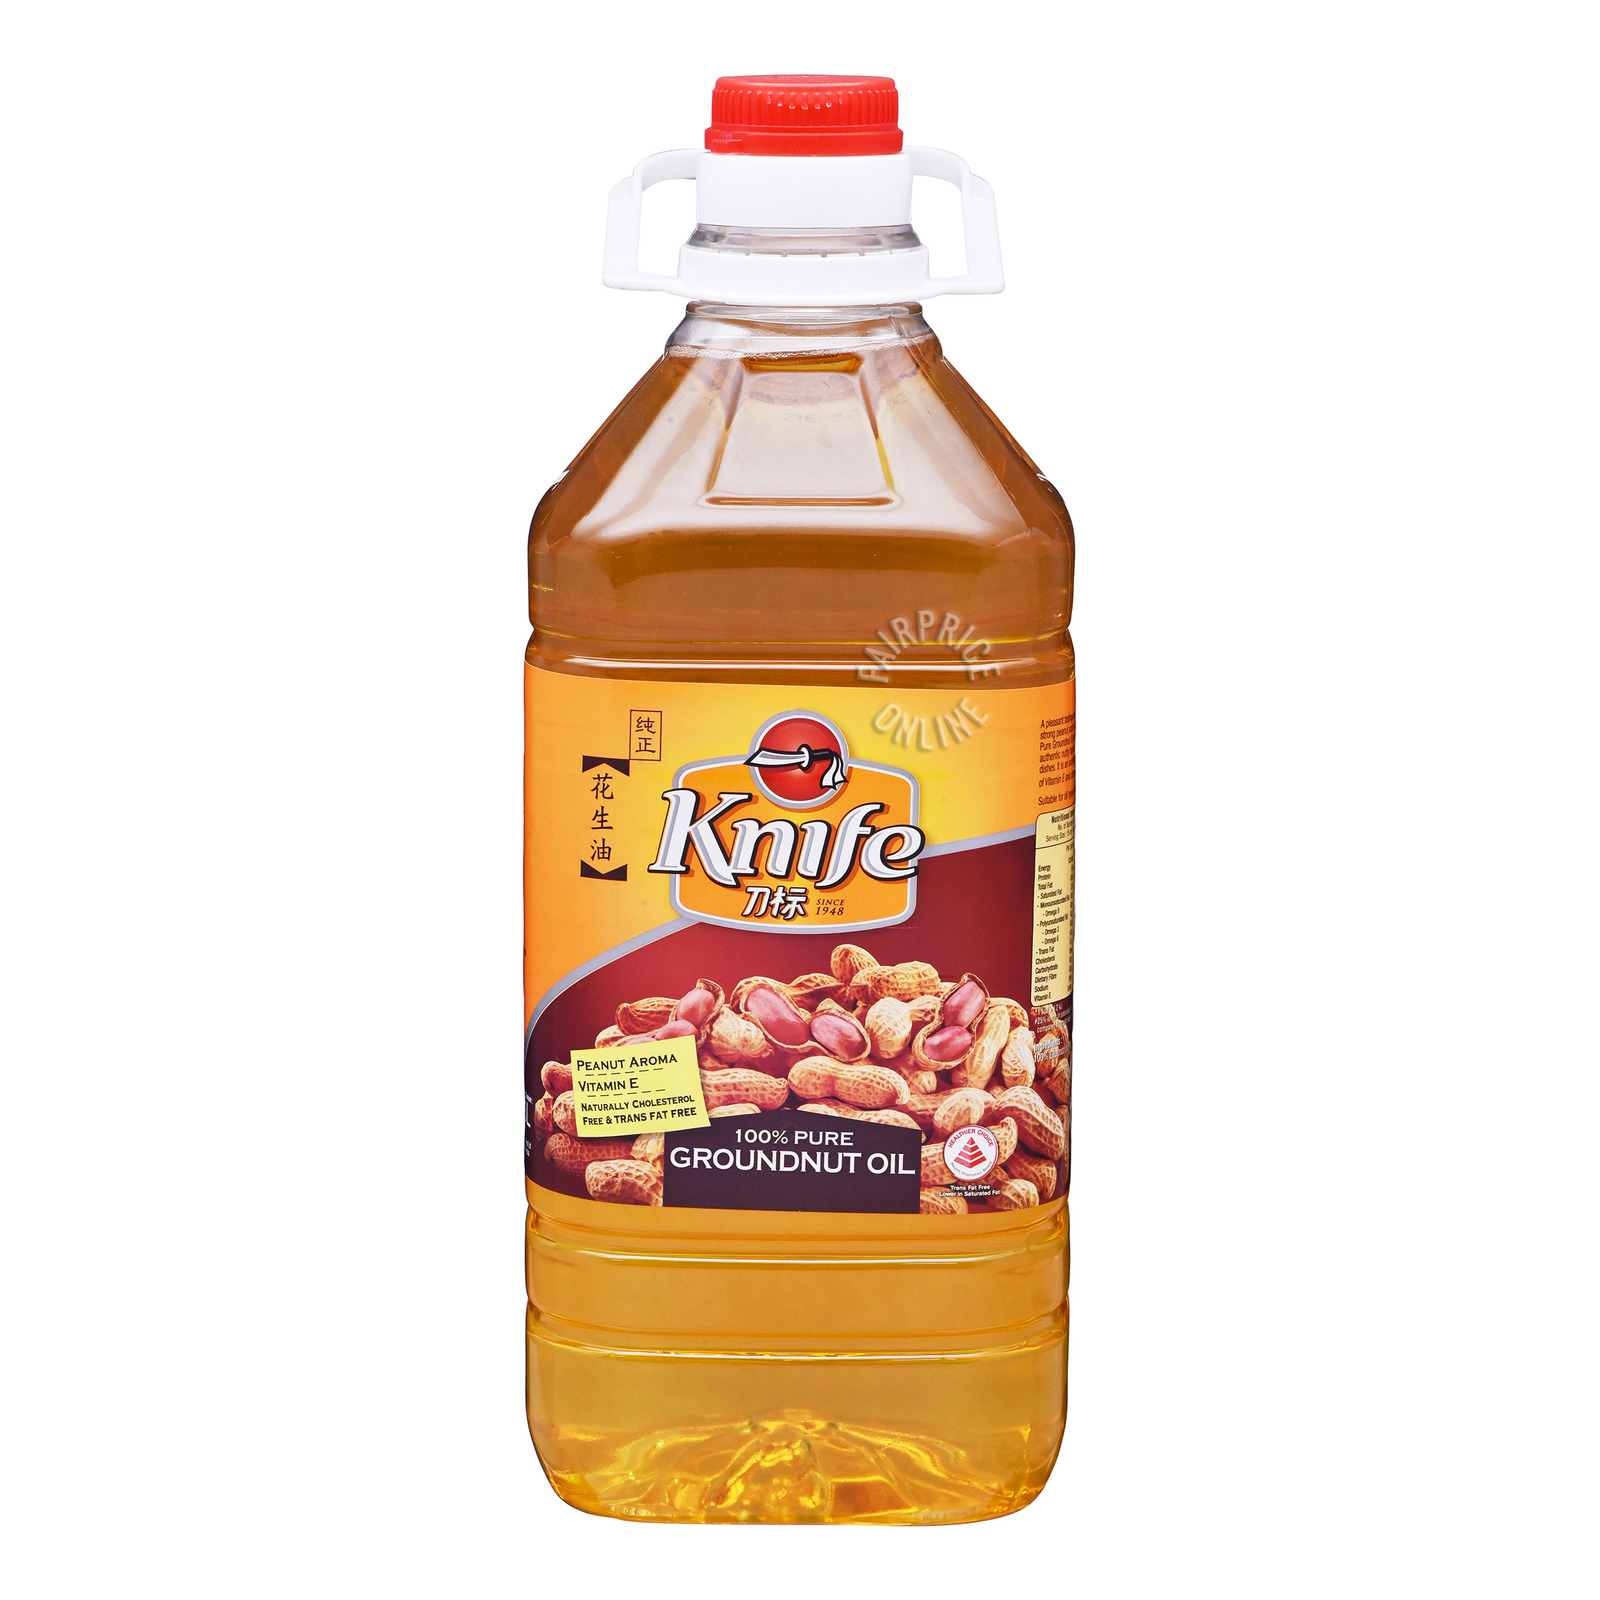 Knife Brand Cooking Oil - Groundnut